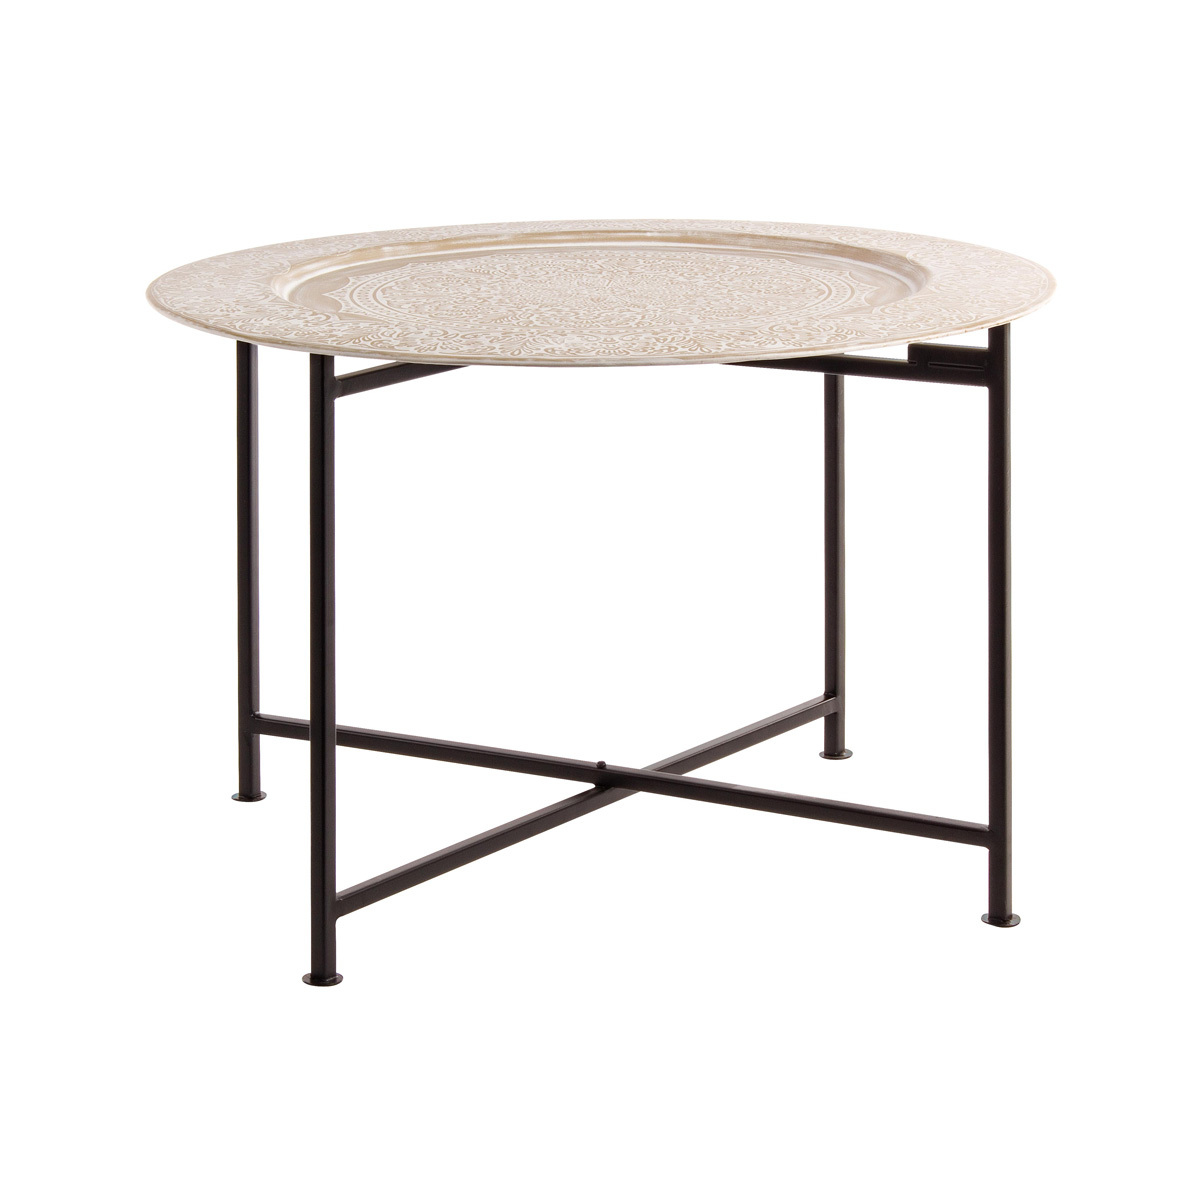 Photos 1: Bizzotto Round table in metal d. 60 0746052